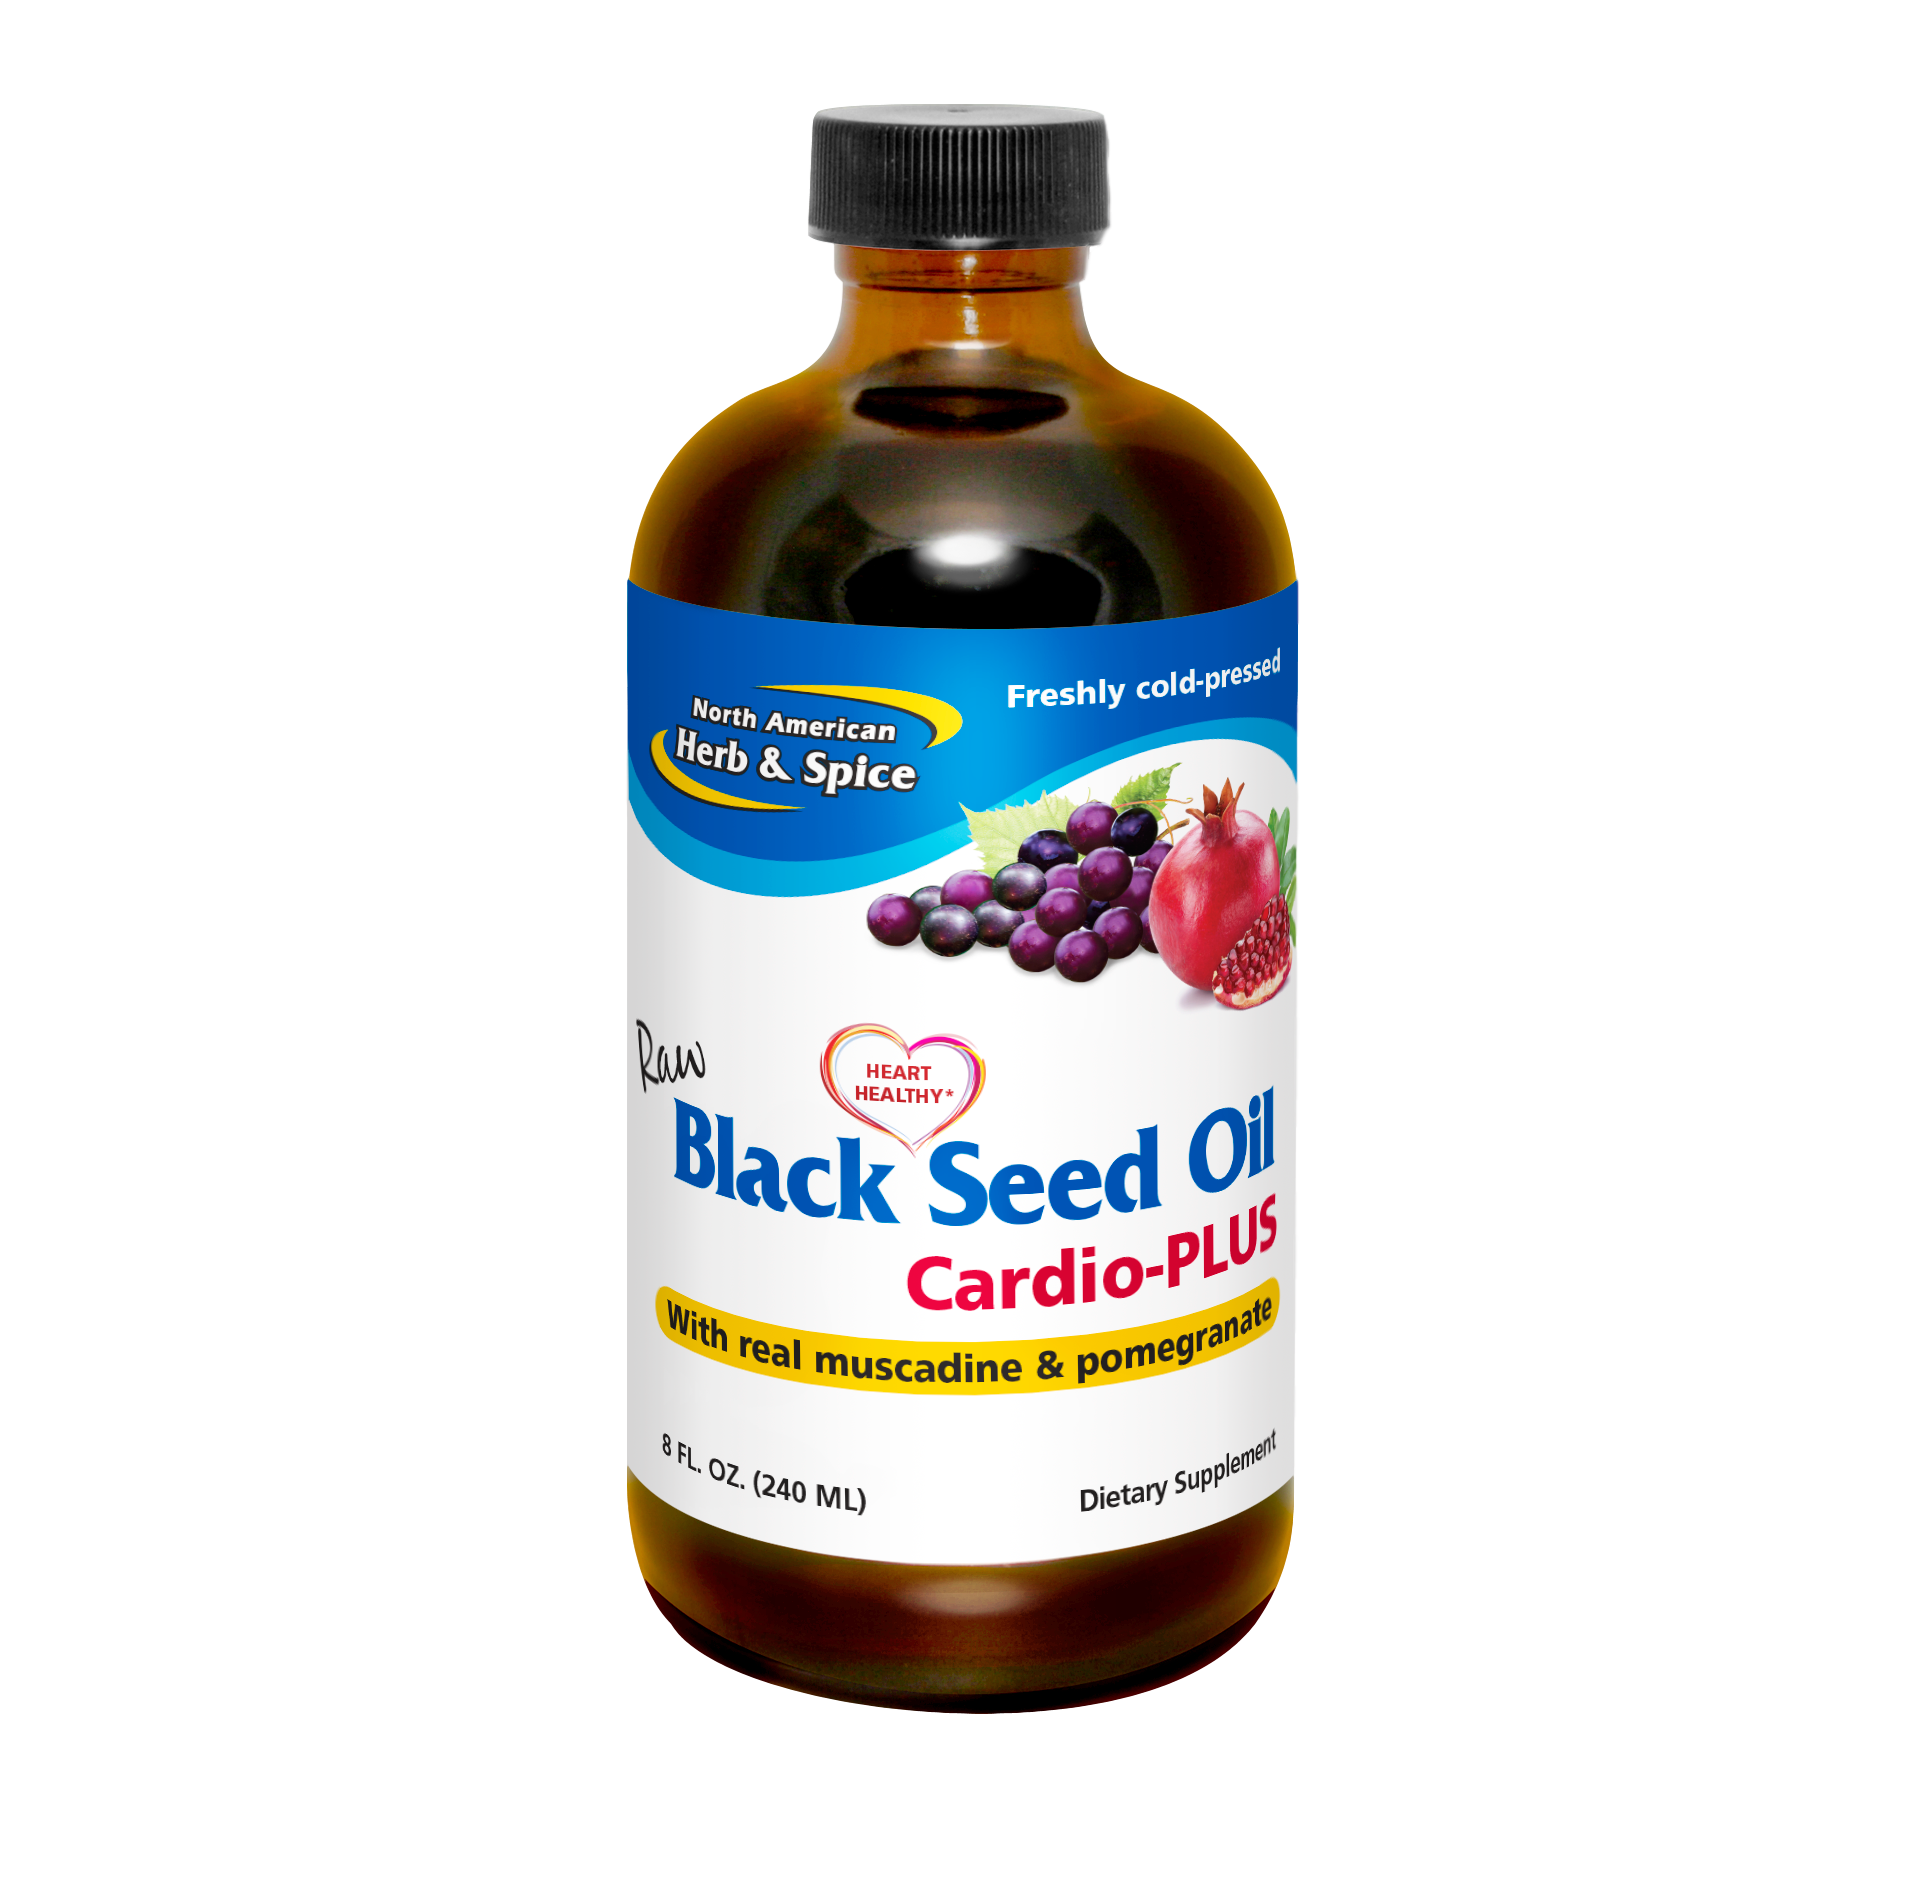 Black Seed Oil cardio plus 8 fl oz front label